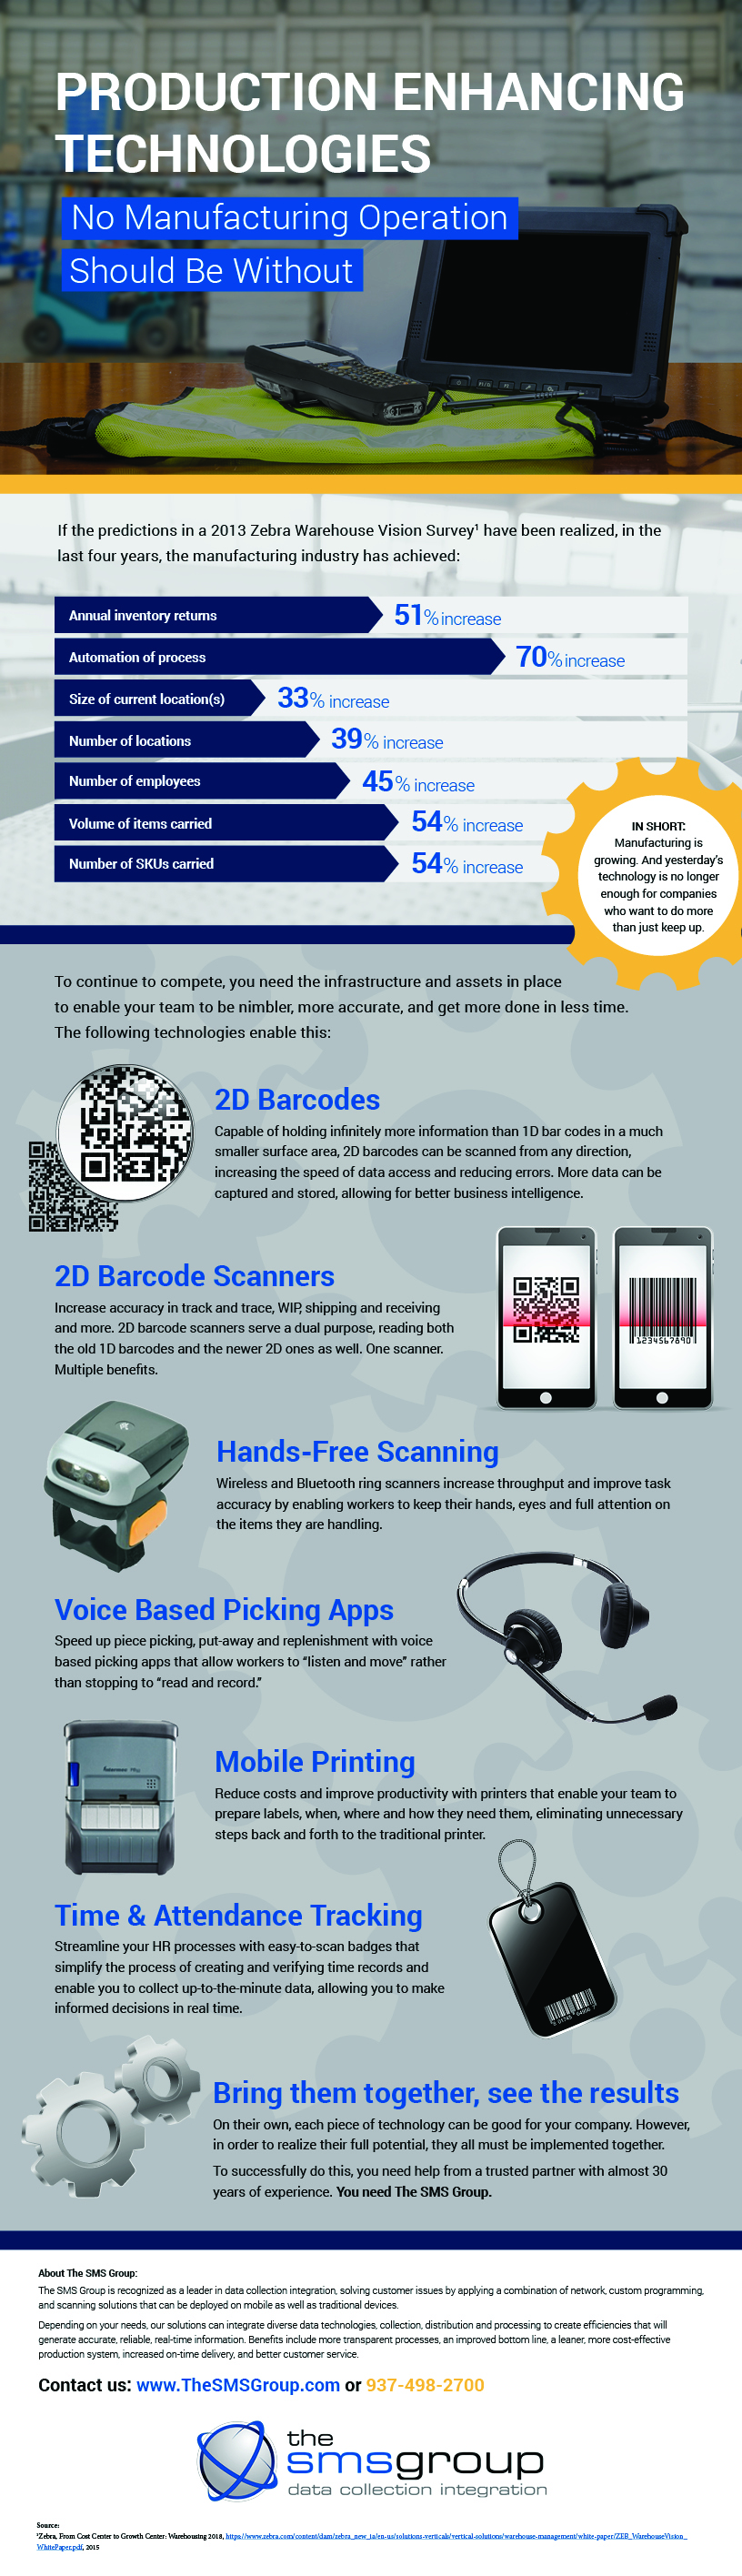 17_01_SMS_Production_Enhancing_Technologies_Infographic